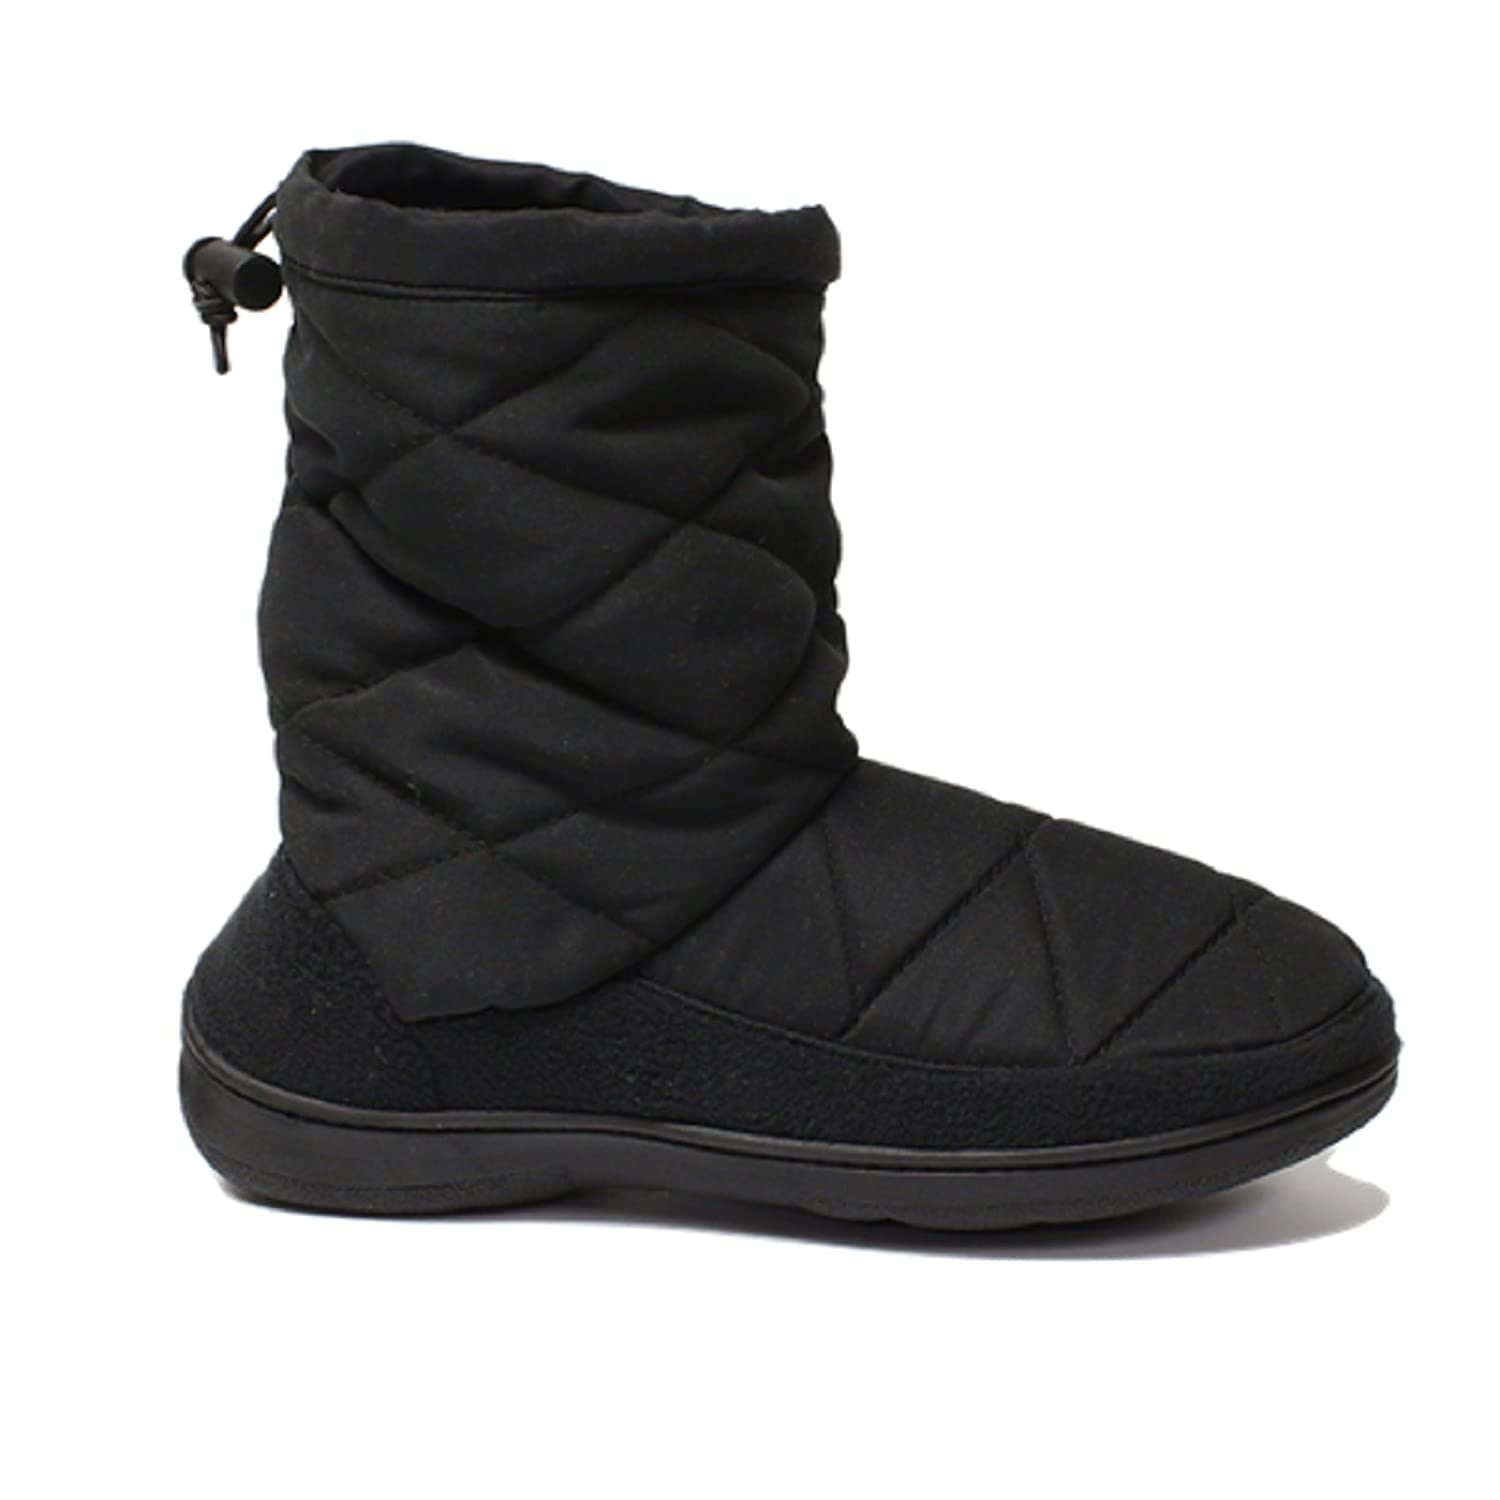 Dearfoams QUILTED NYLON BOOT 50485 Black